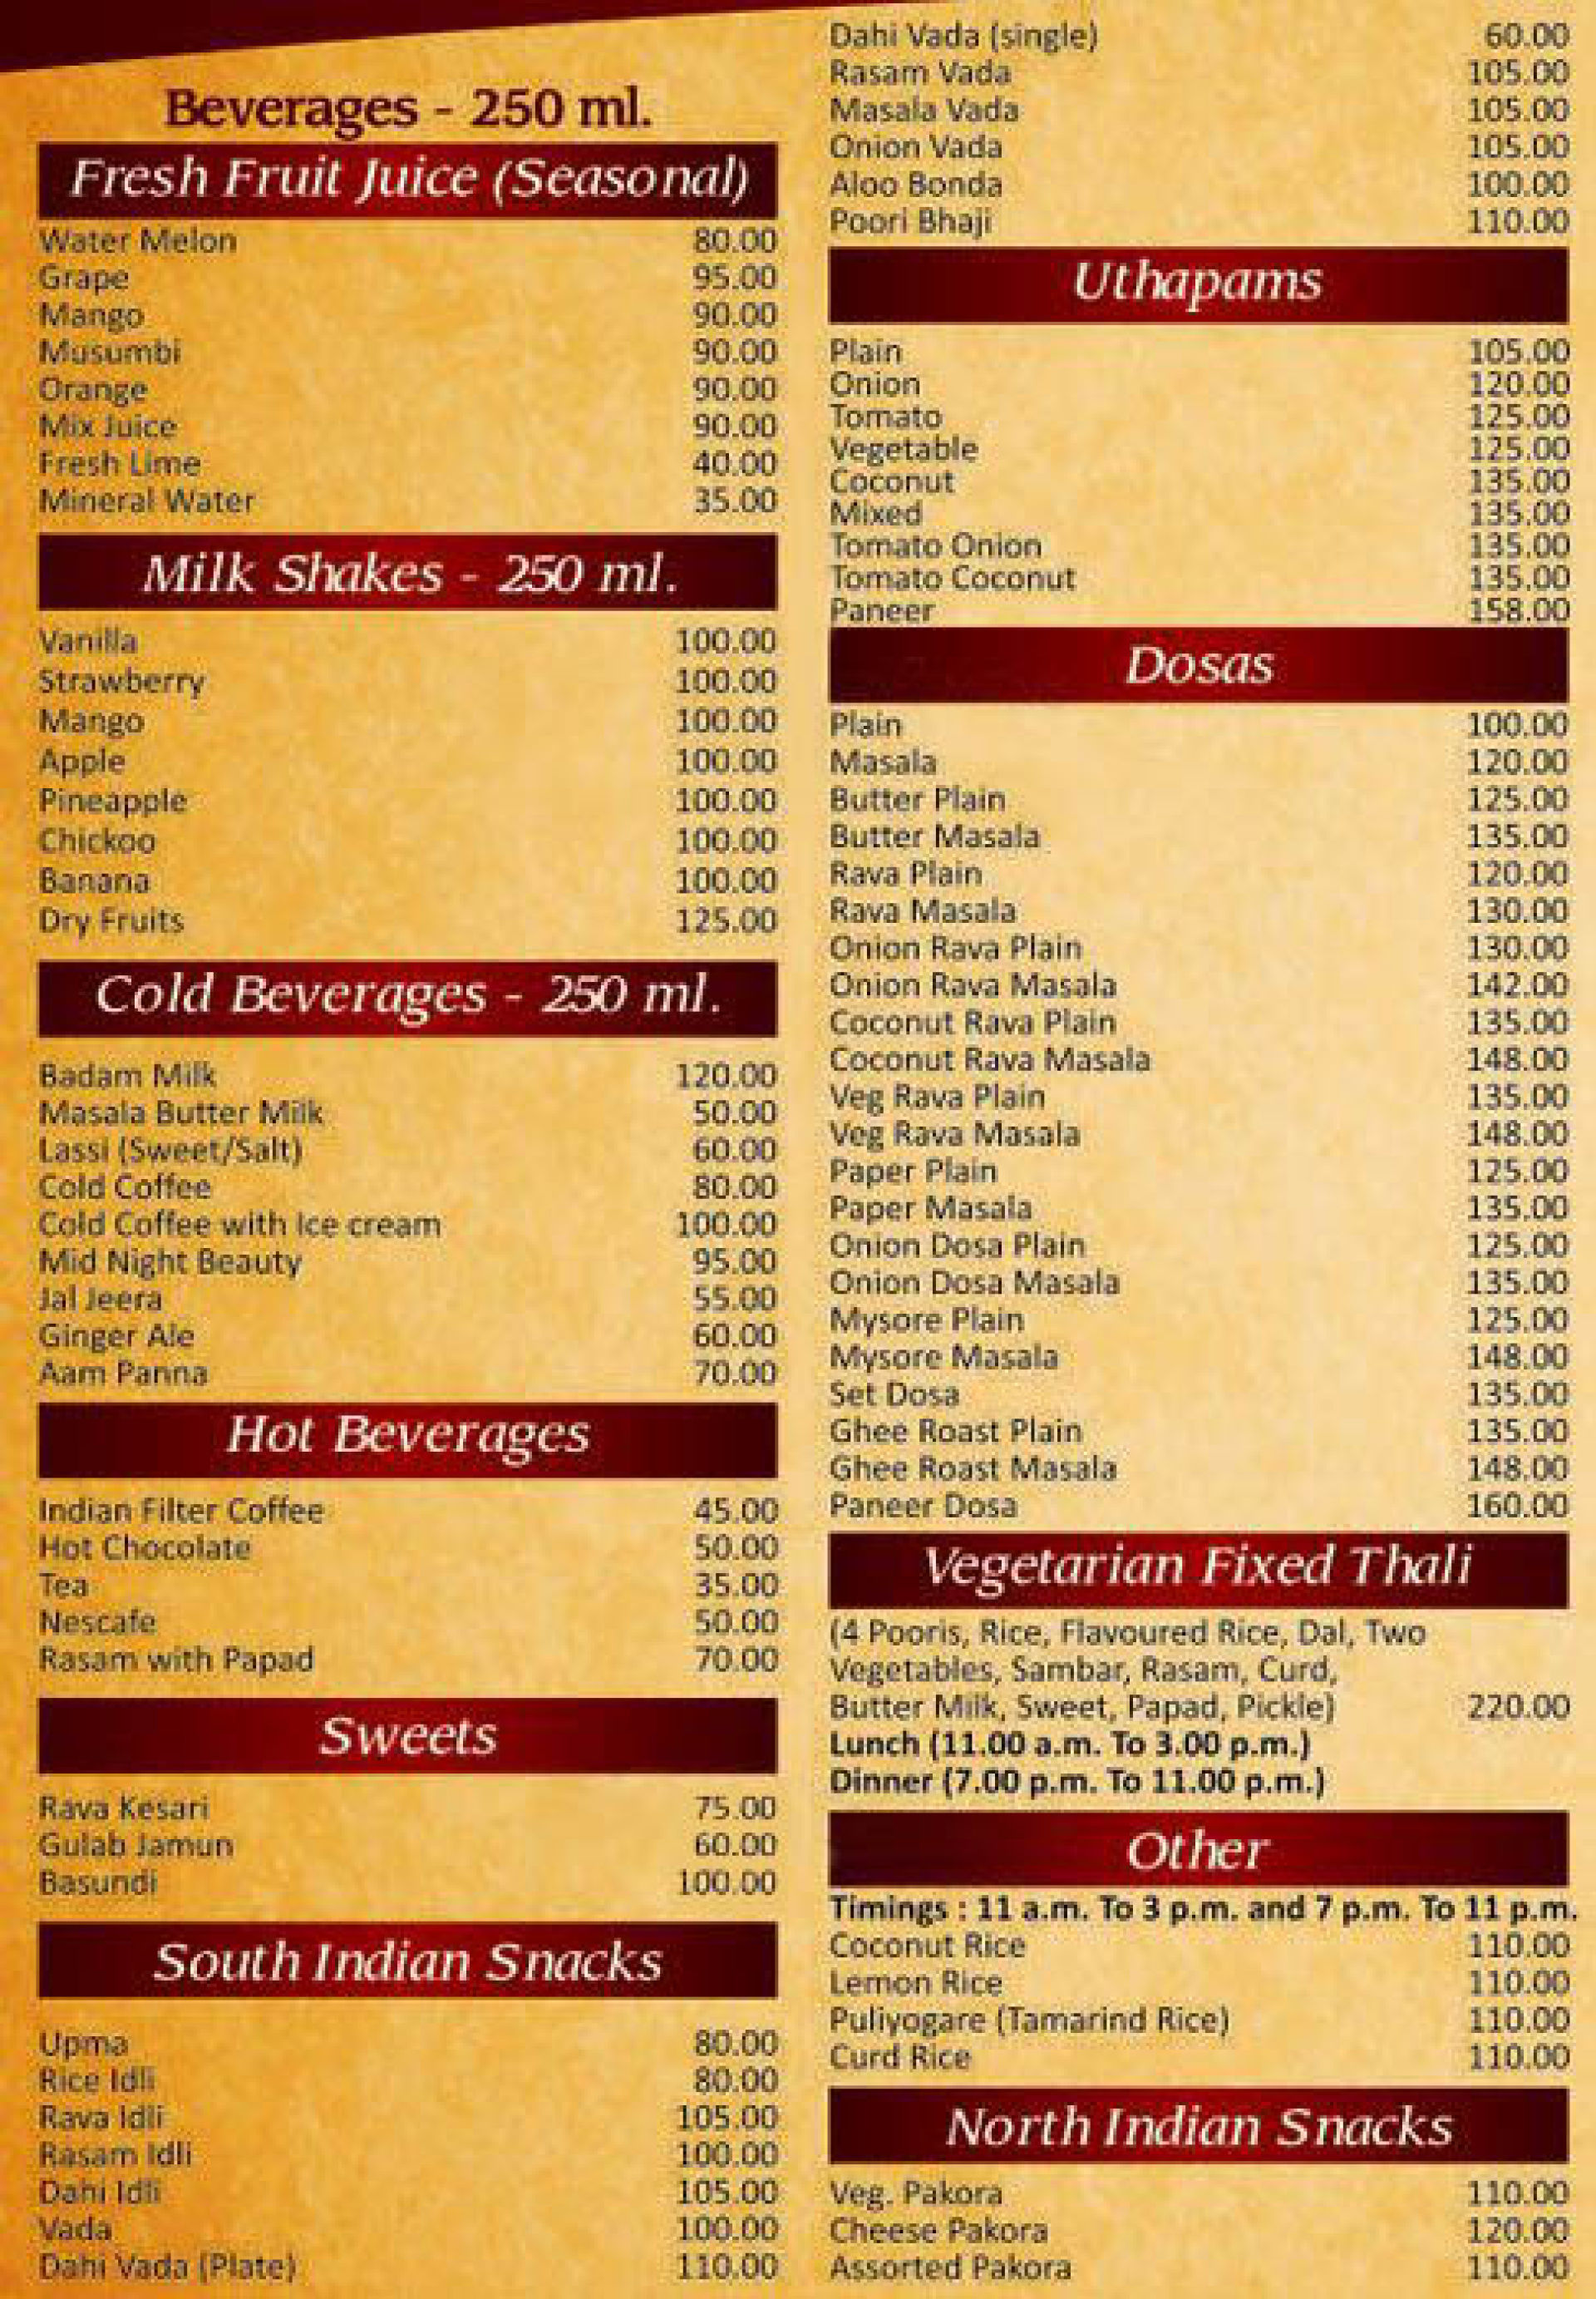 Menu of the Shree Rathnam